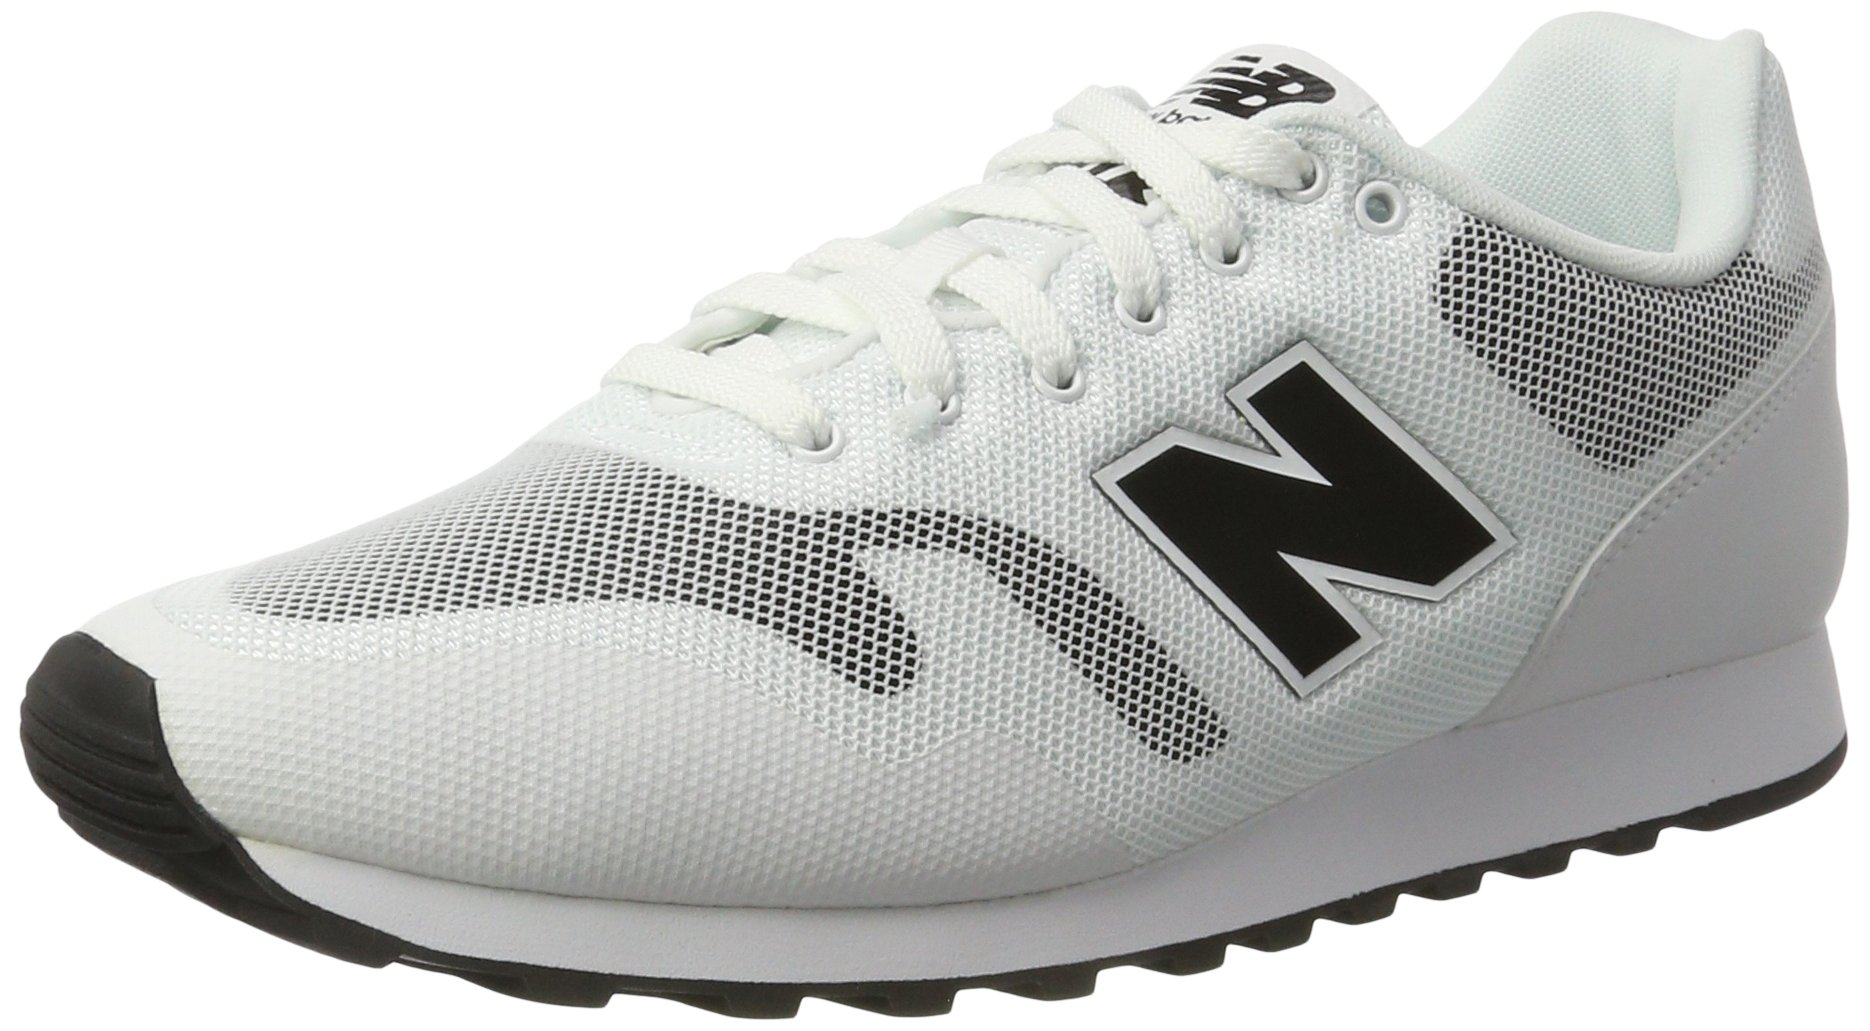 New Balance Men's Md373 Trainers